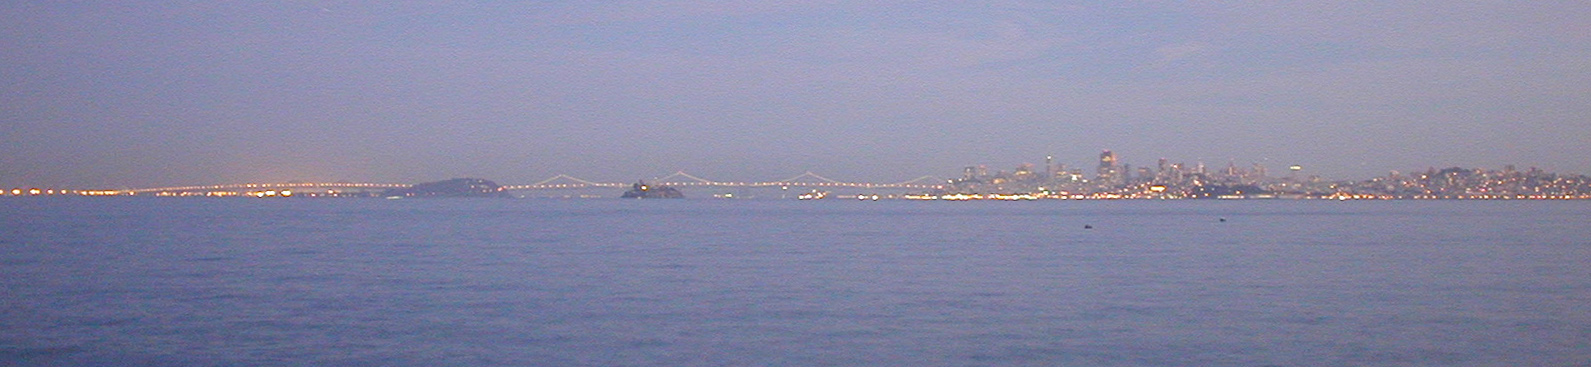 SF at Dusk